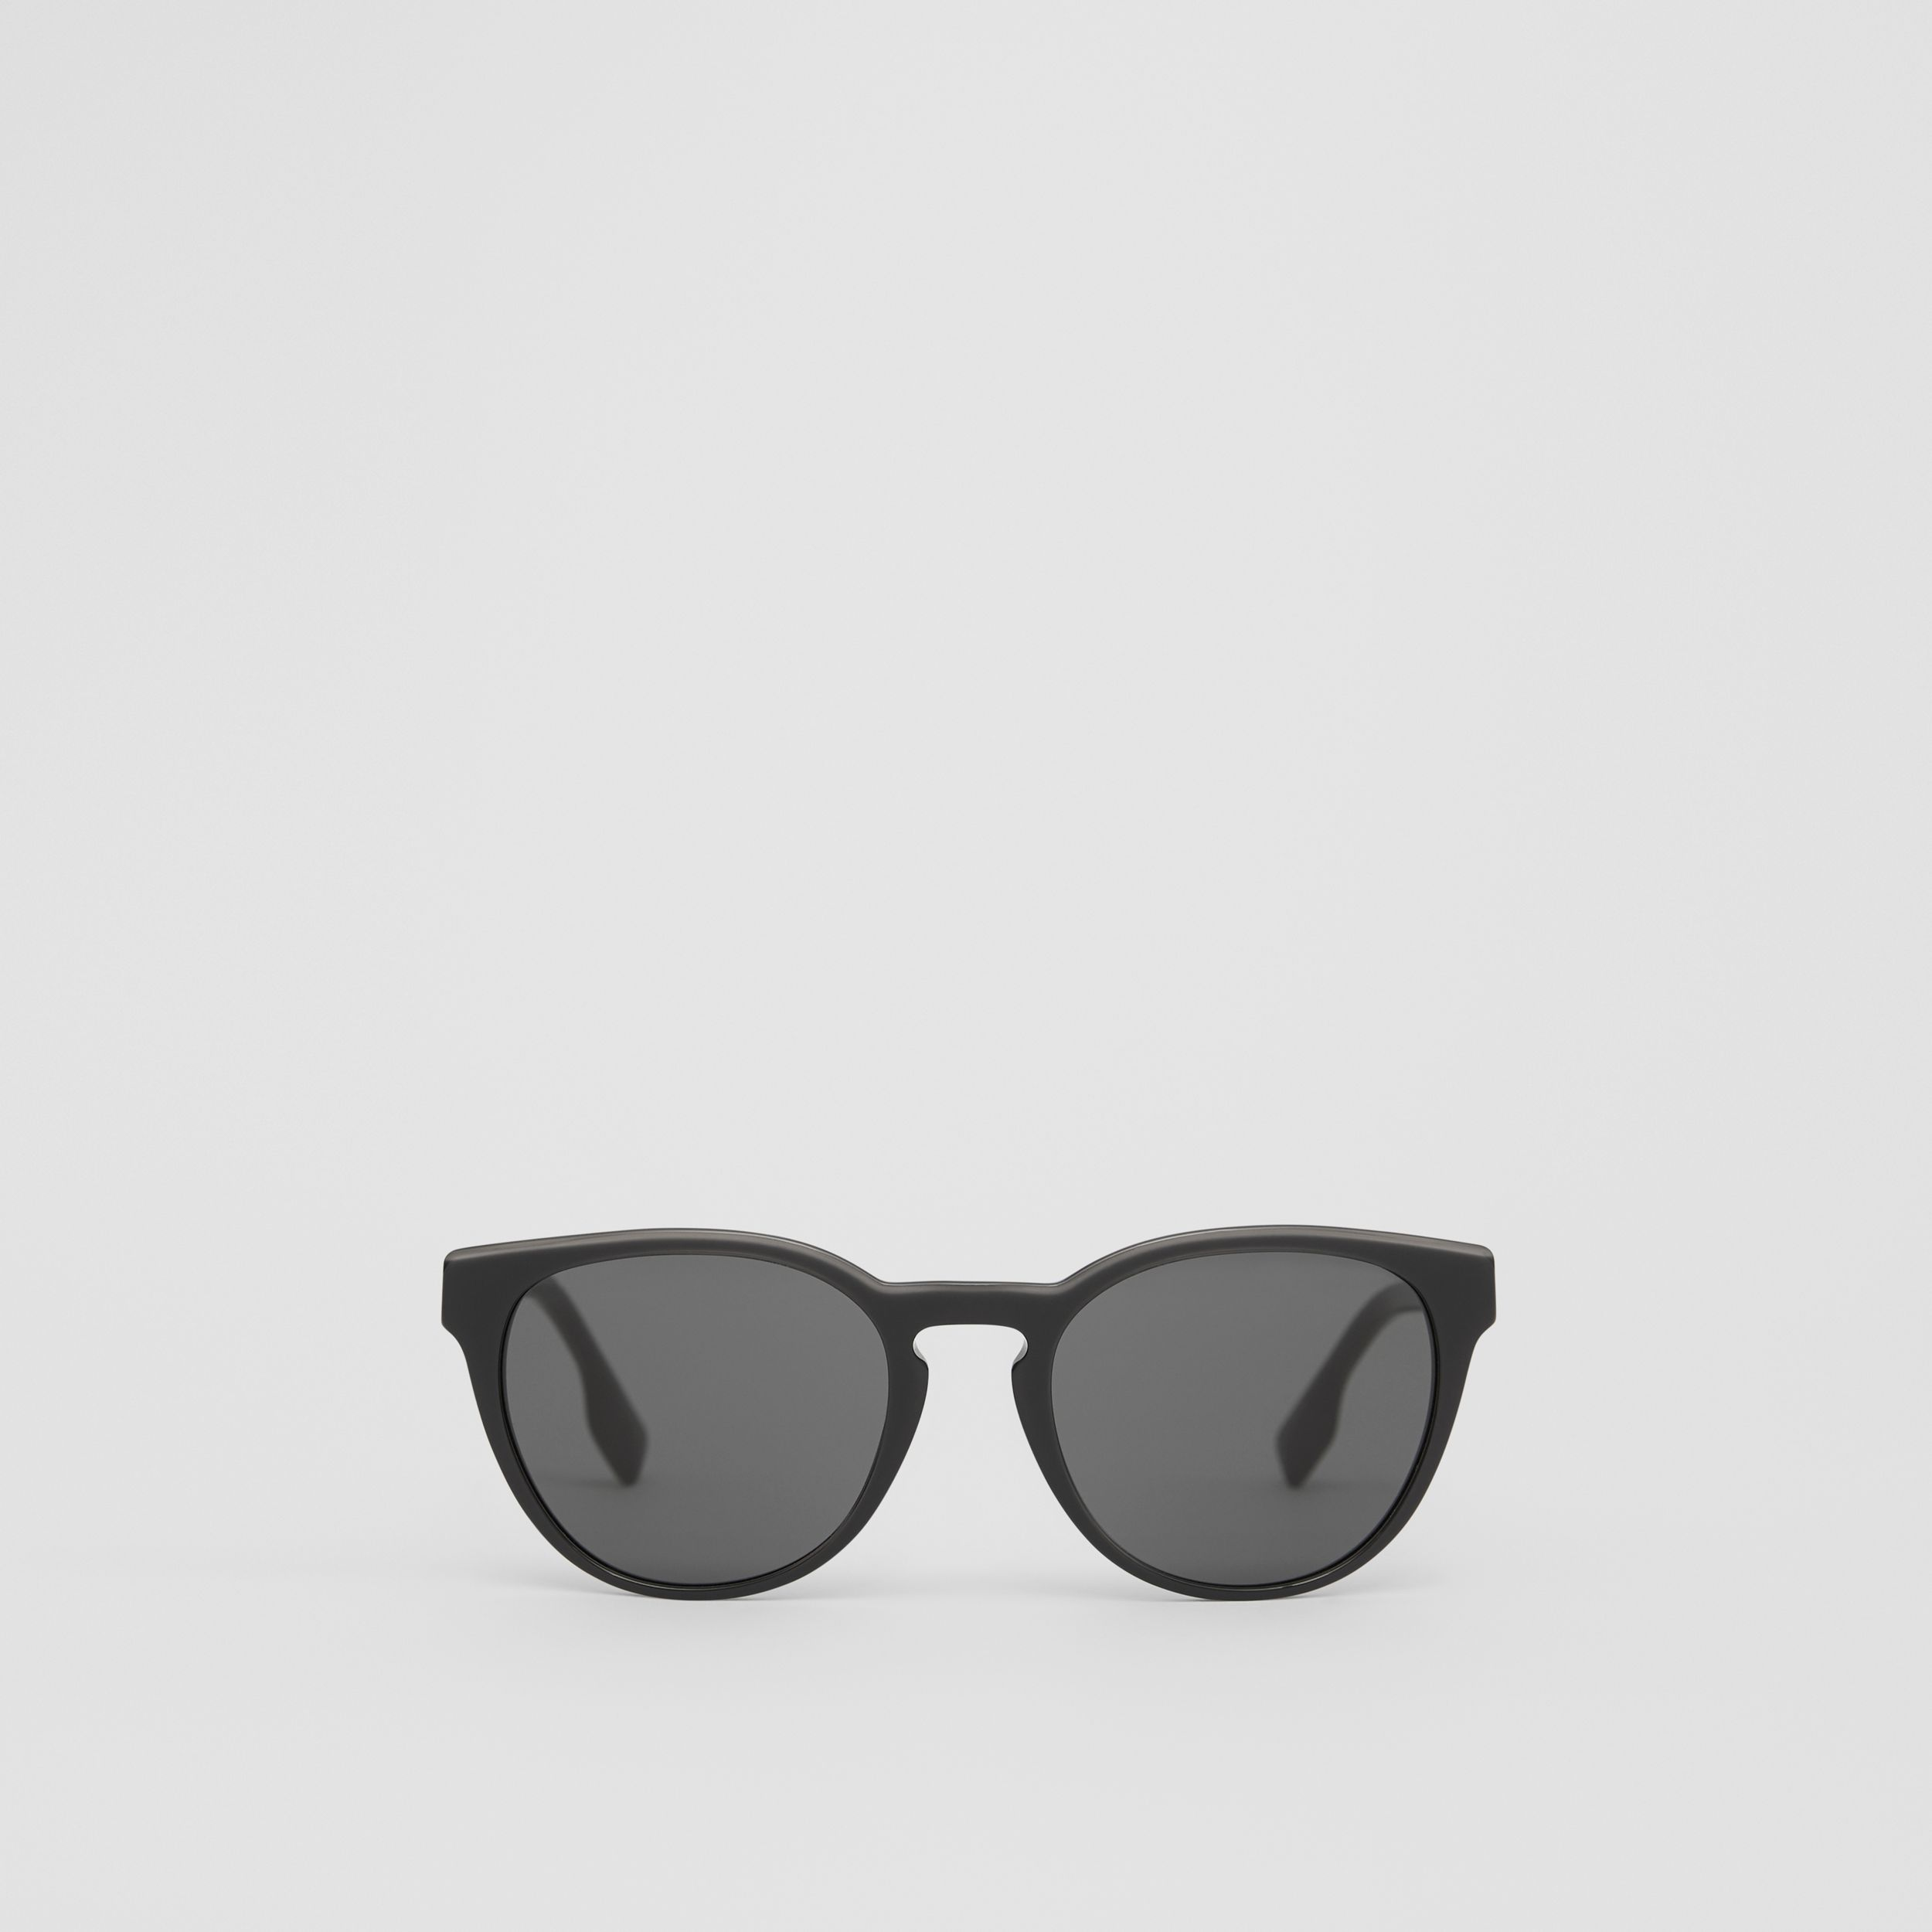 Round Frame Sunglasses in Black - Men | Burberry - 1